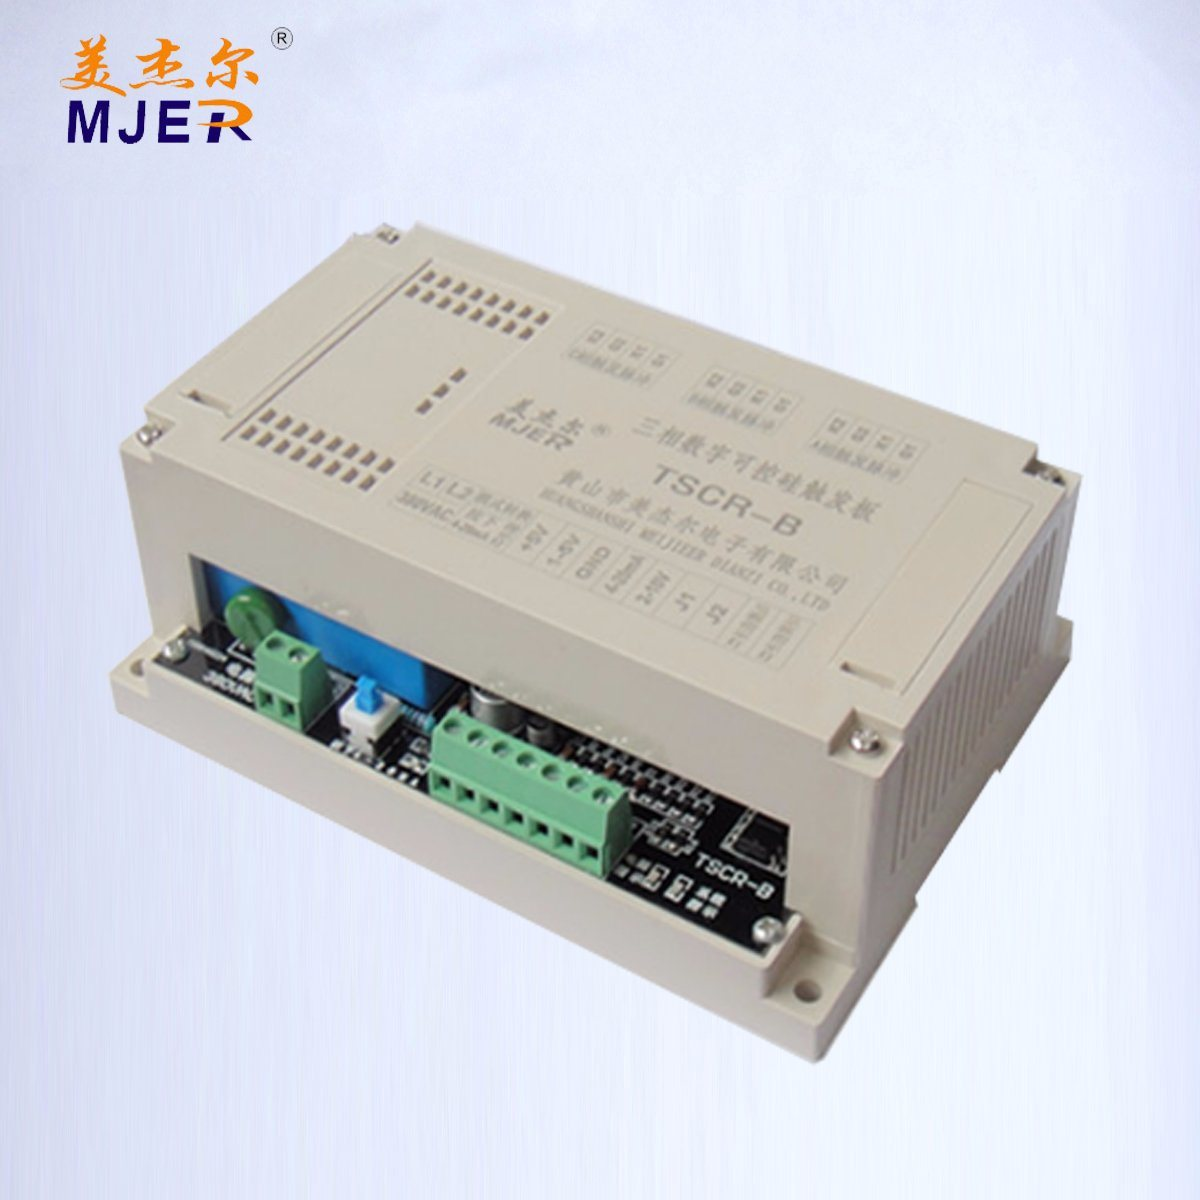 China Three Phase Digital Thyristor Trigger Plate Board Tscr B Scr Need For Thyristors In Power Electronic Circuits Electrical